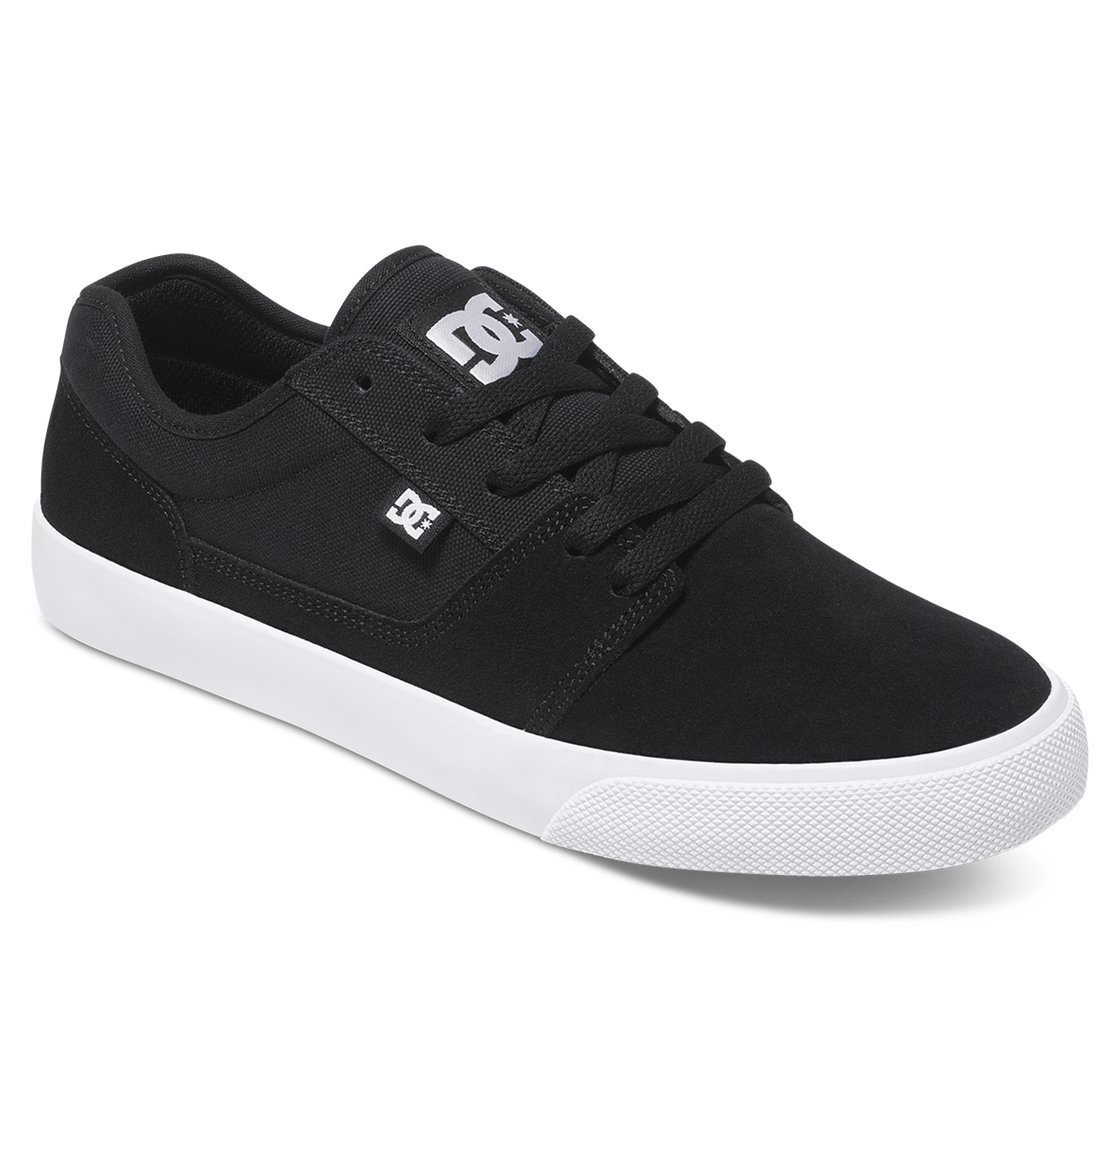 dc shoes tonik chaussures basses pour homme 302905 ebay. Black Bedroom Furniture Sets. Home Design Ideas